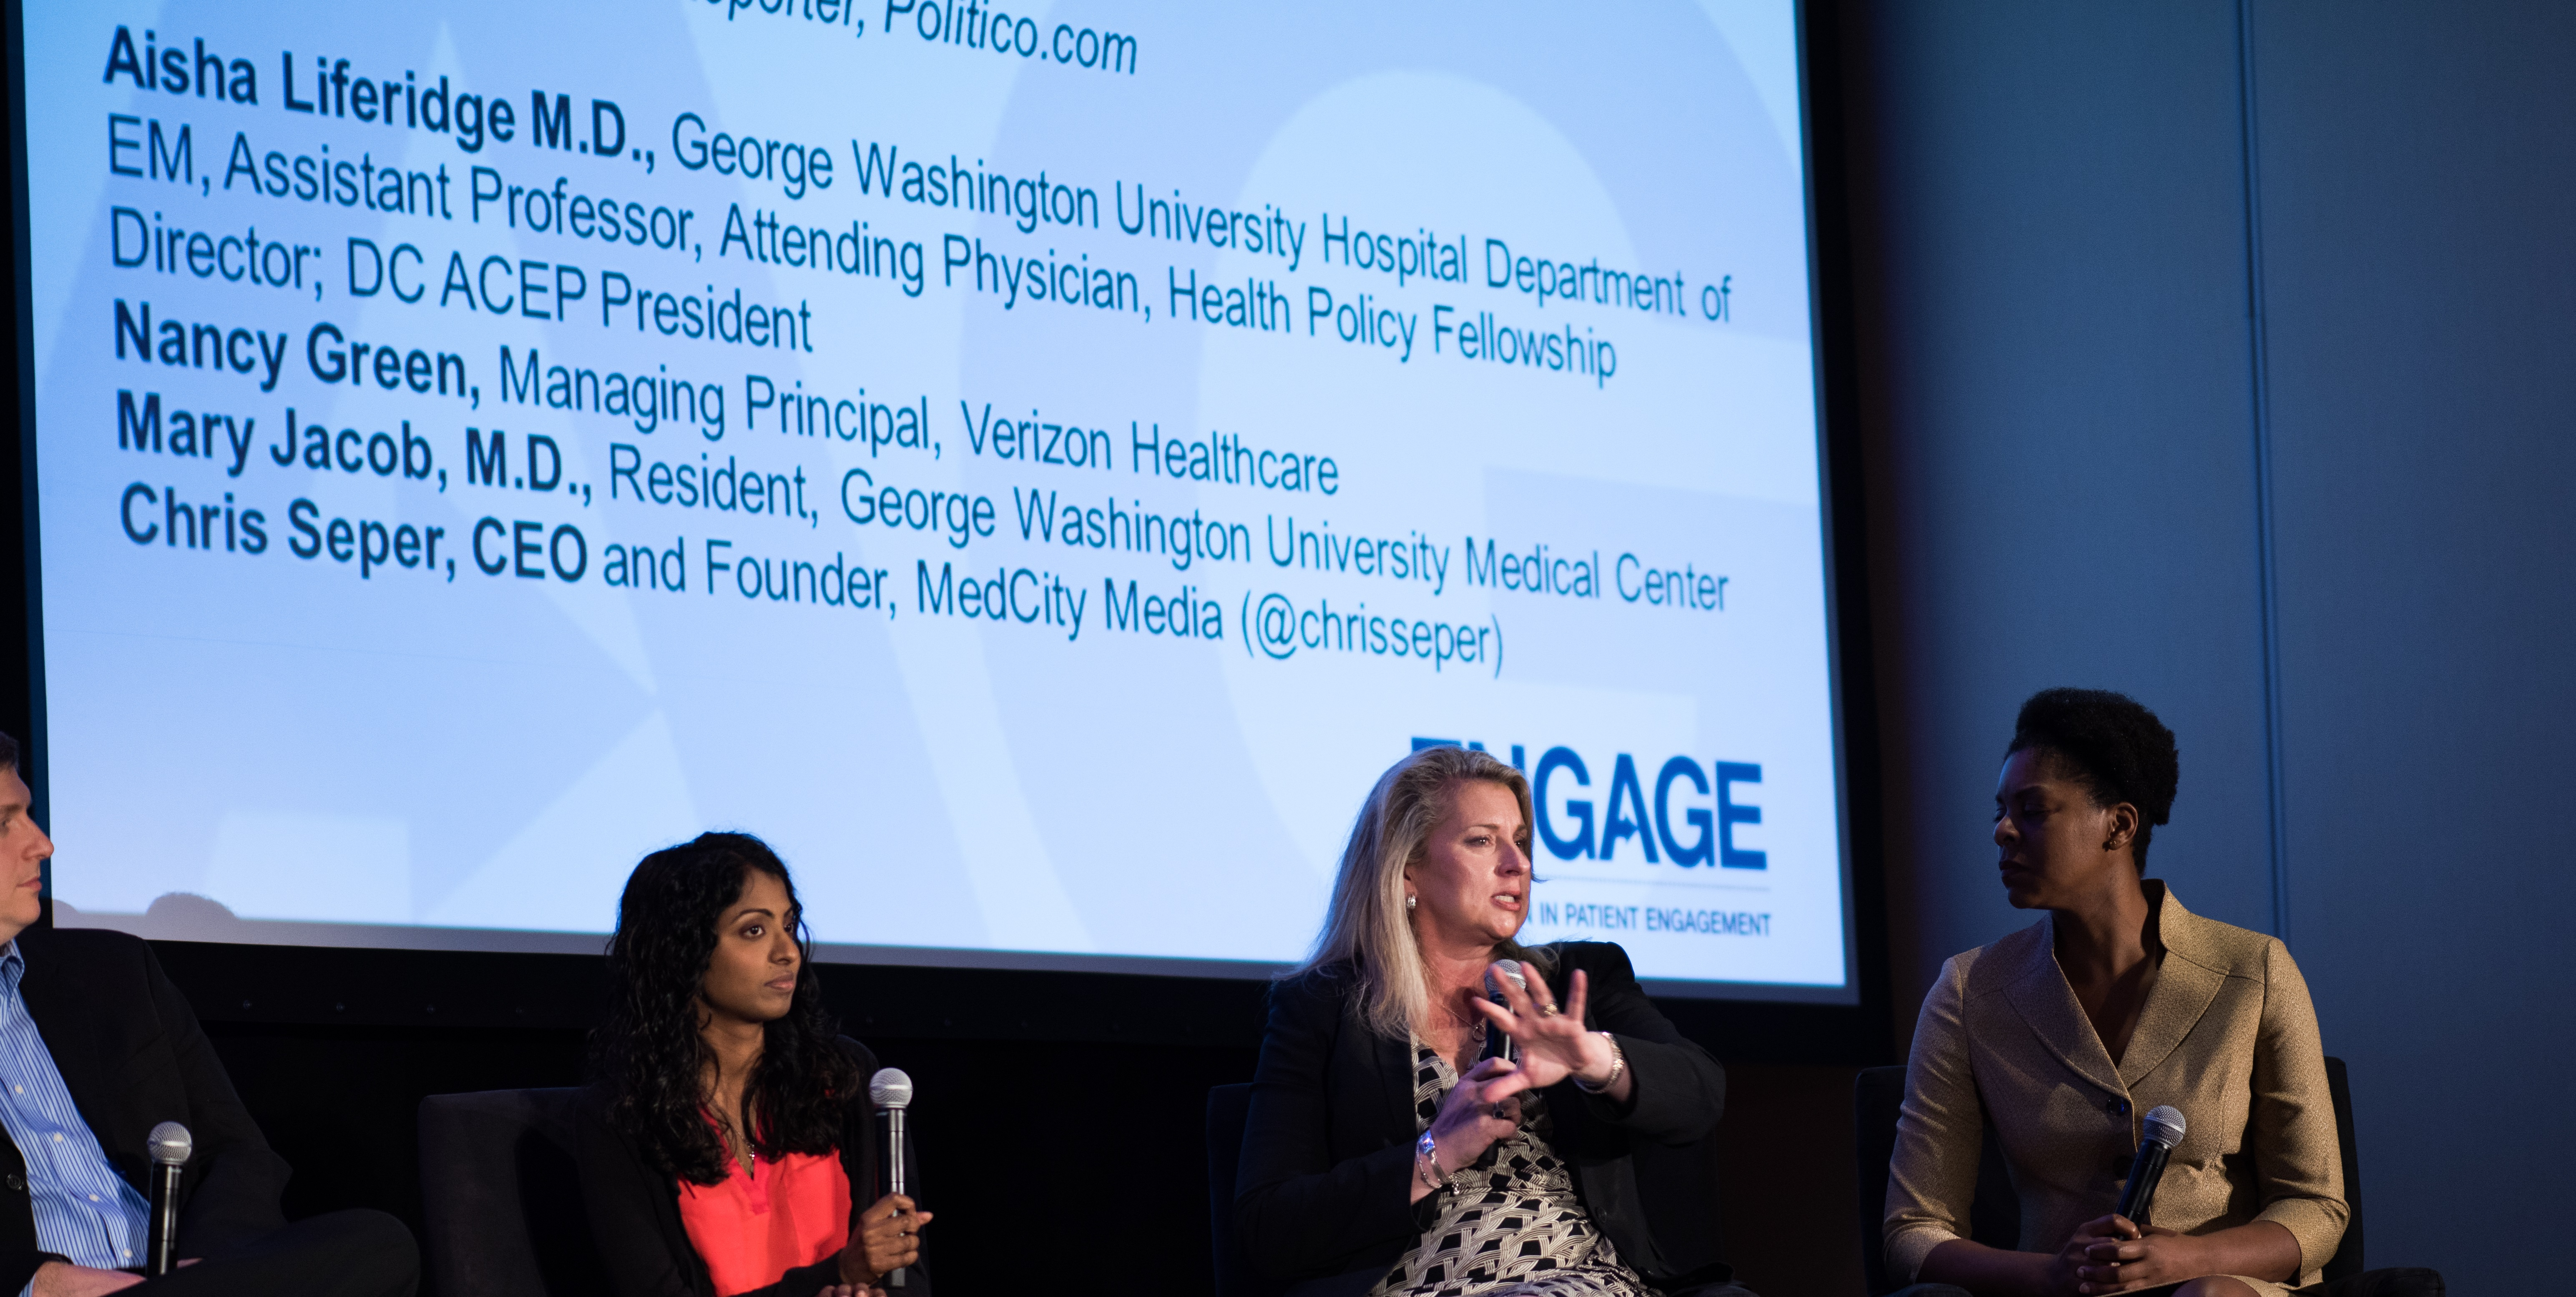 MedCity ENGAGE begins with red carpets, independent films and healthcare's hard realties